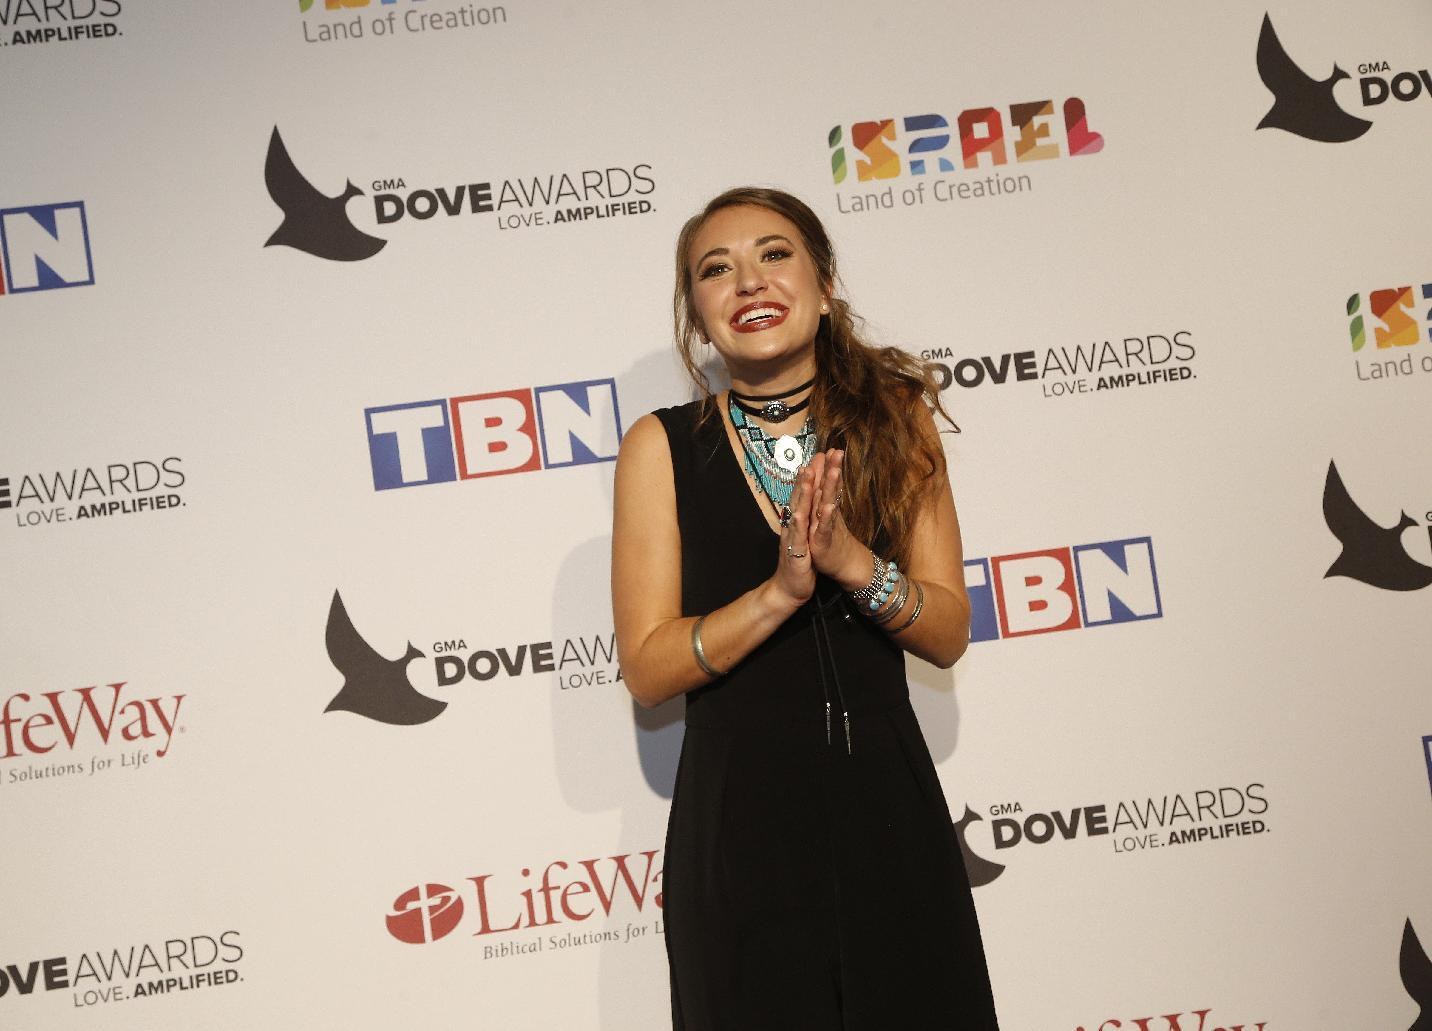 Singer Lauren Daigle repeats with 3 wins at Dove Awards